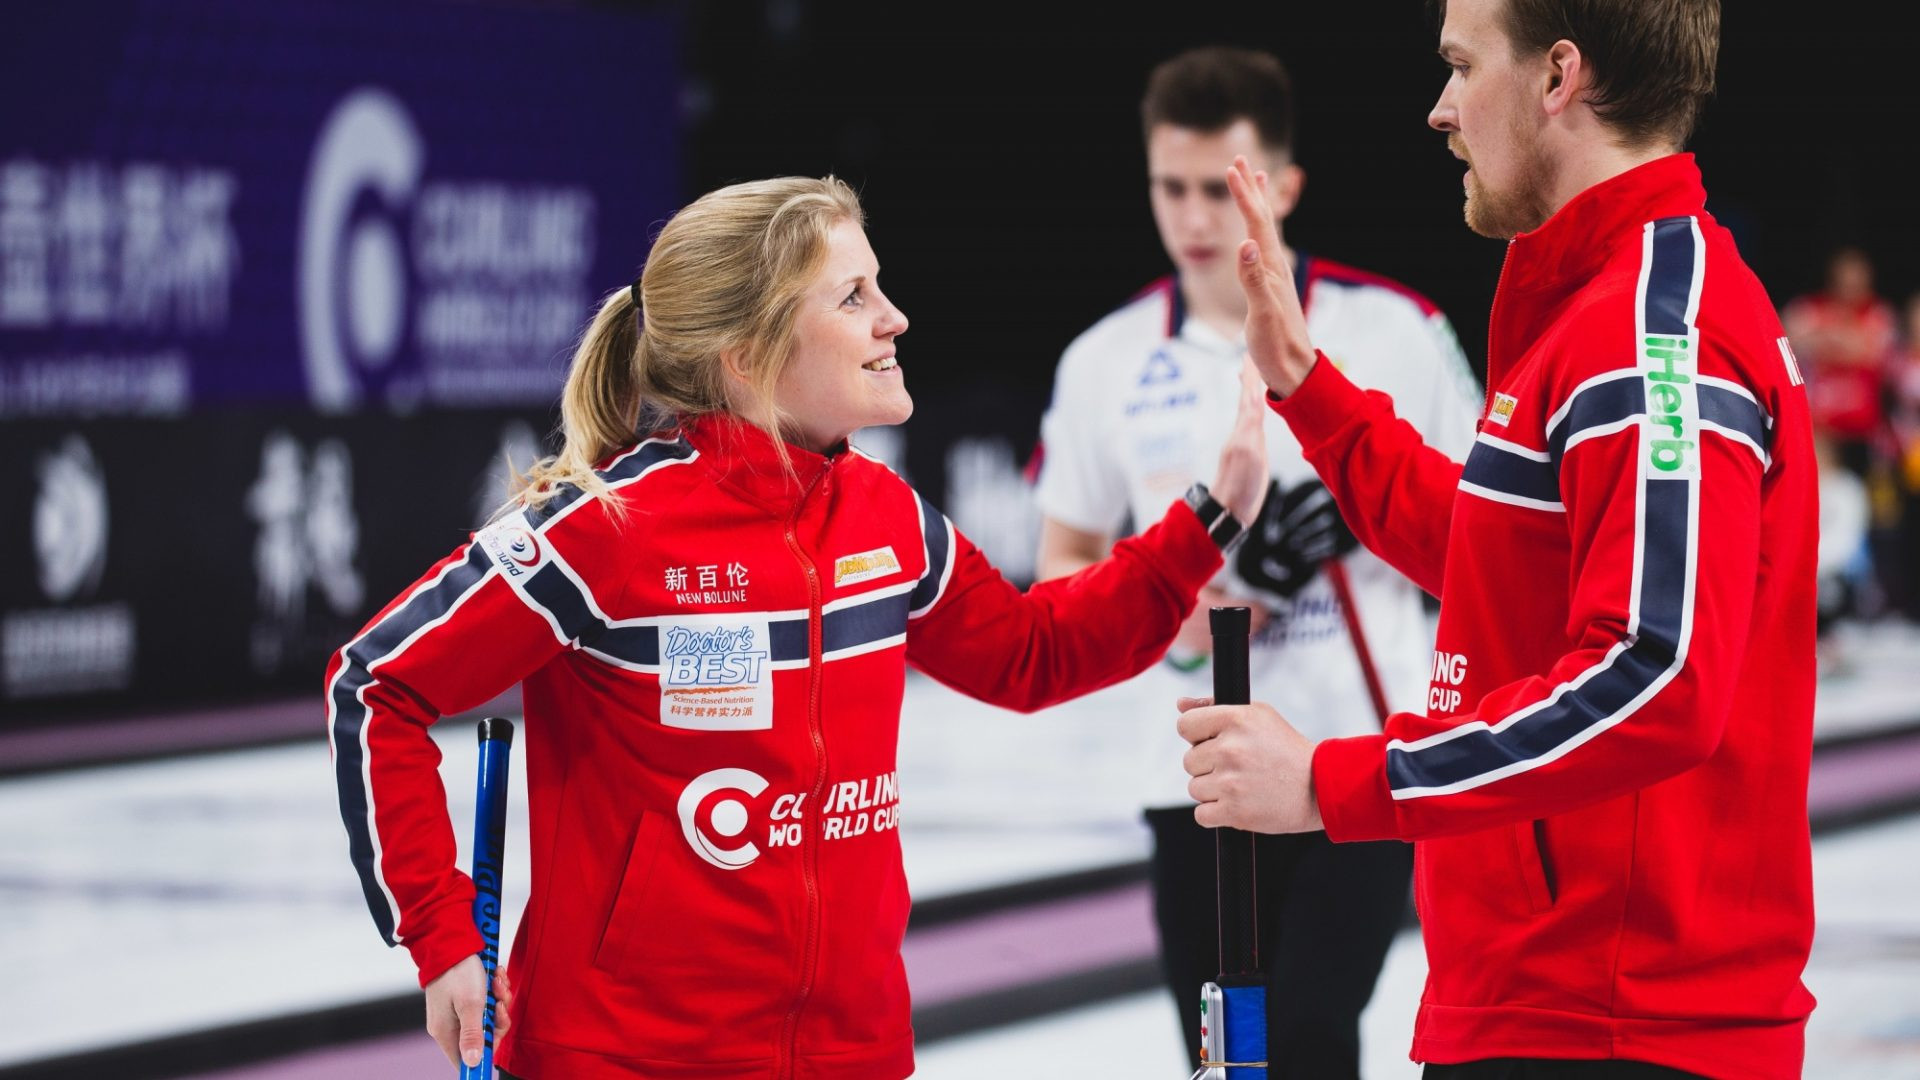 Norway's Magnus Nedregotten and Kristen Skaslien built on their fine victory on day on by producing a controlled display to beat Russia's Maria Komarova and Daniil Goriachev  ©World Curling Federation